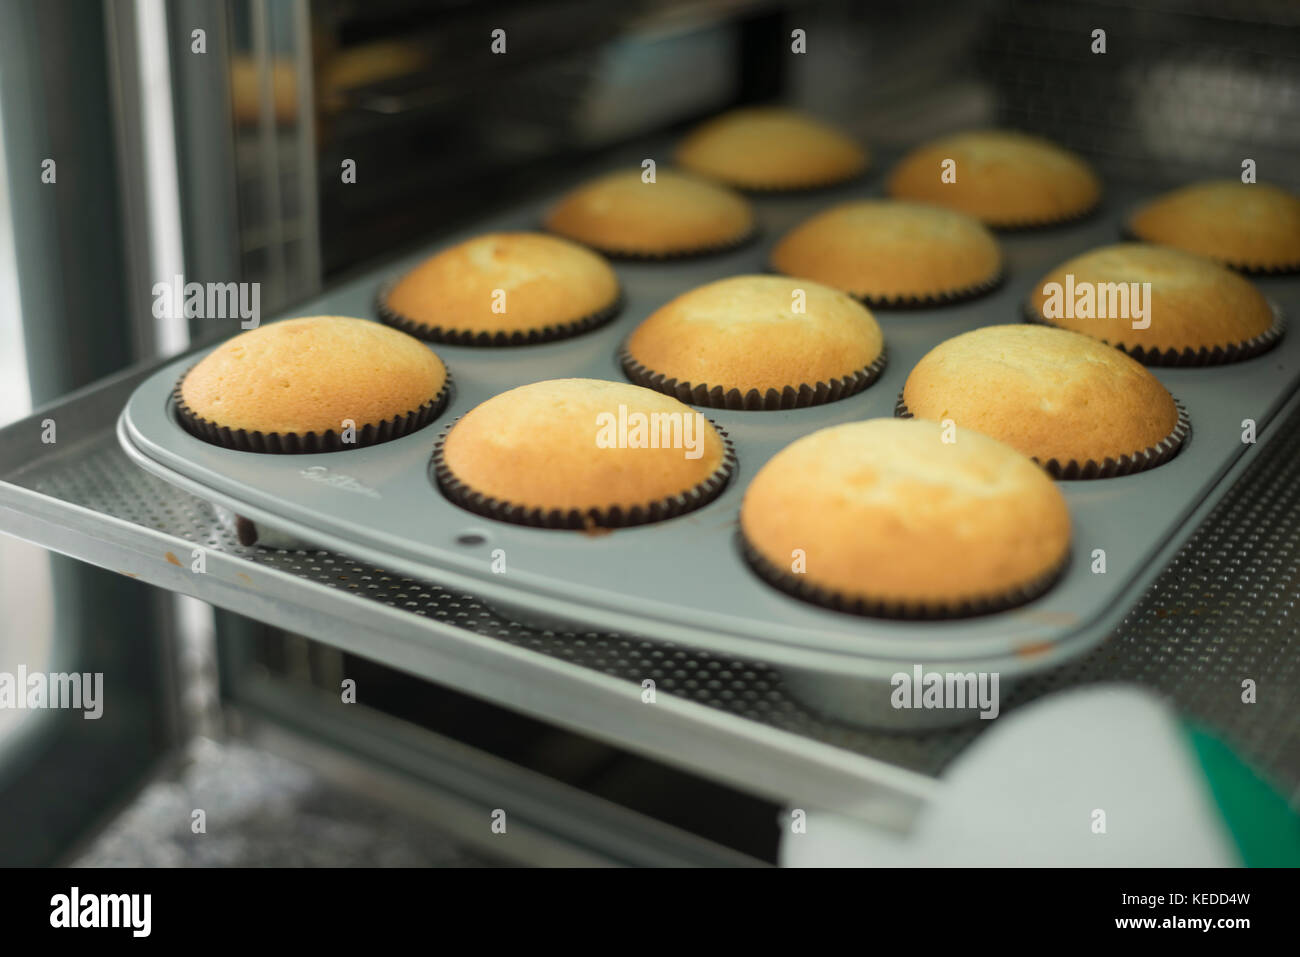 Cupcakes coming out of the oven - Stock Image